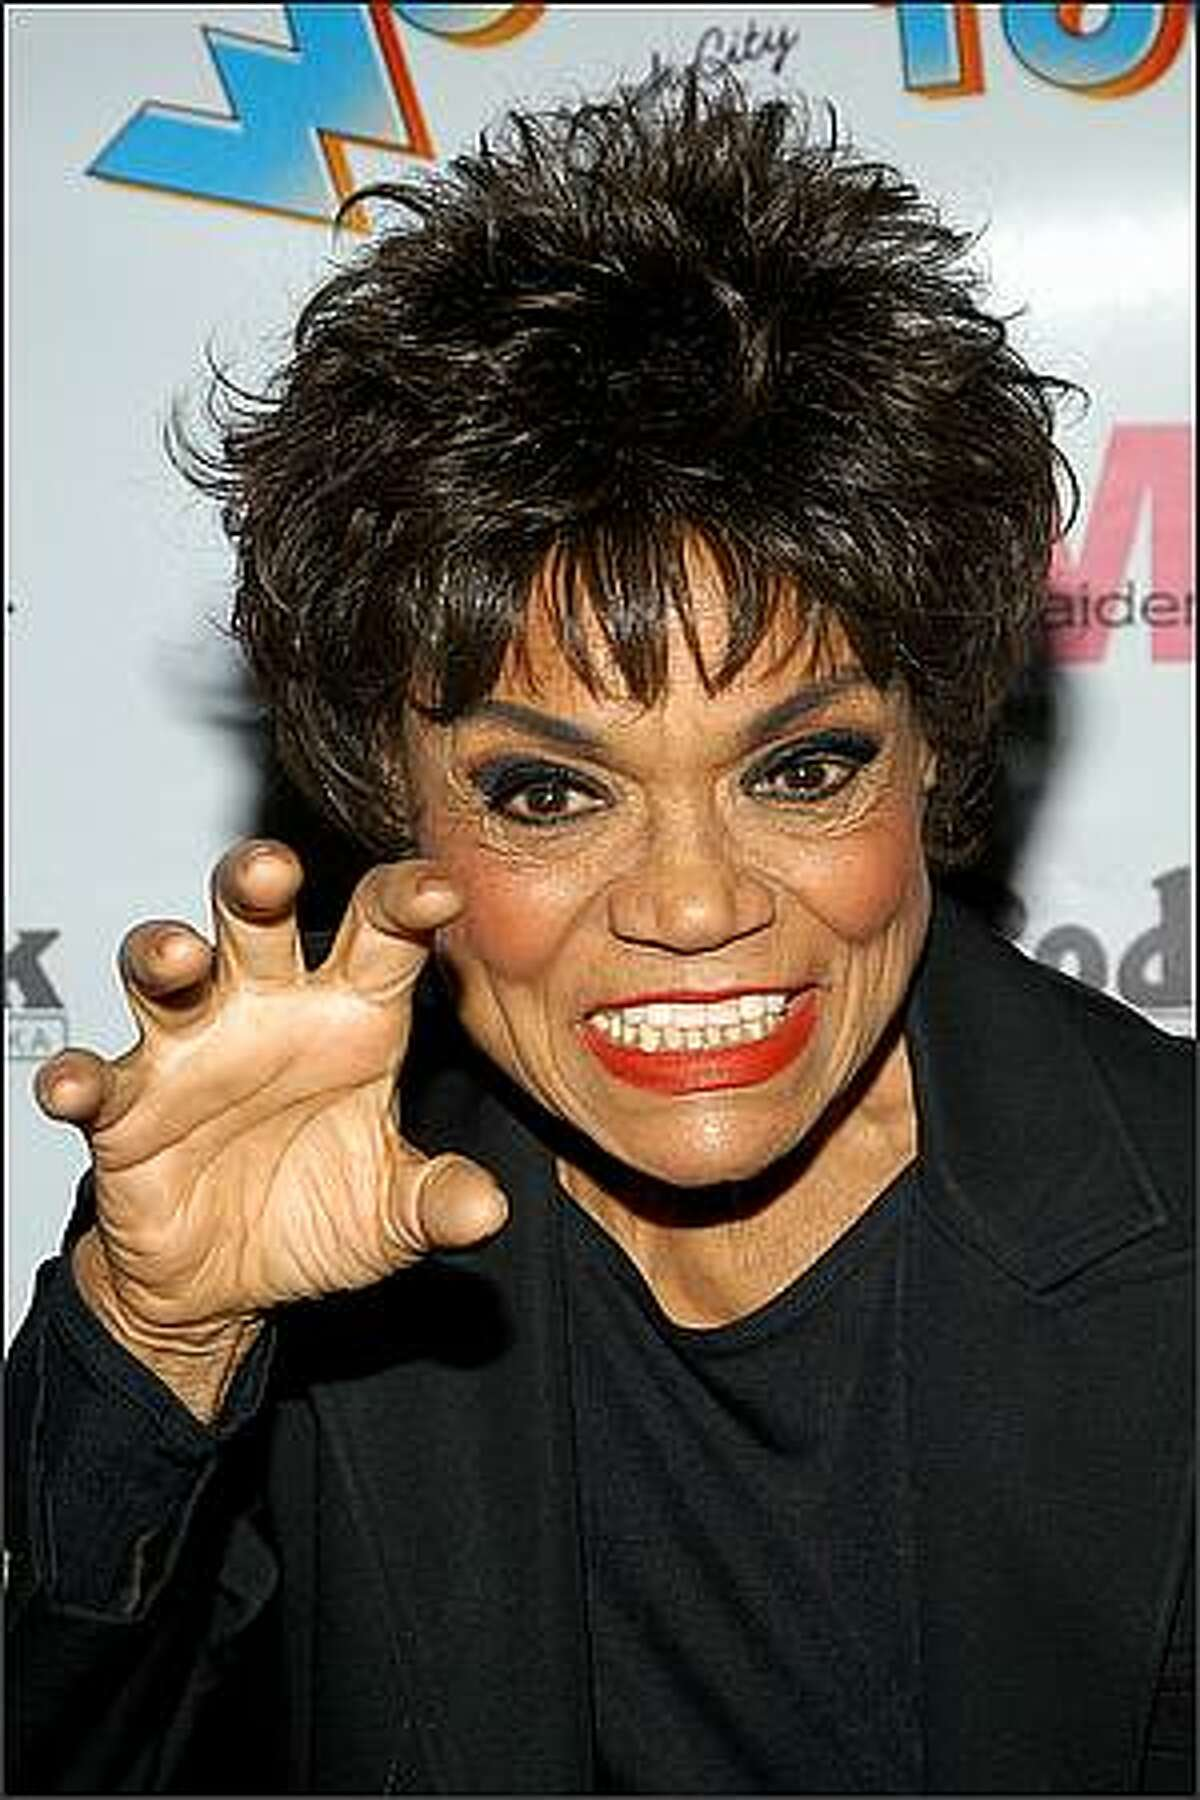 Actress Eartha Kitt arrives at the after party for the opening night of the Broadway musical Wonderful Town at the Mandarin Oriental Hotel in New York City. (Photo by Lawrence Lucier/Getty Images)